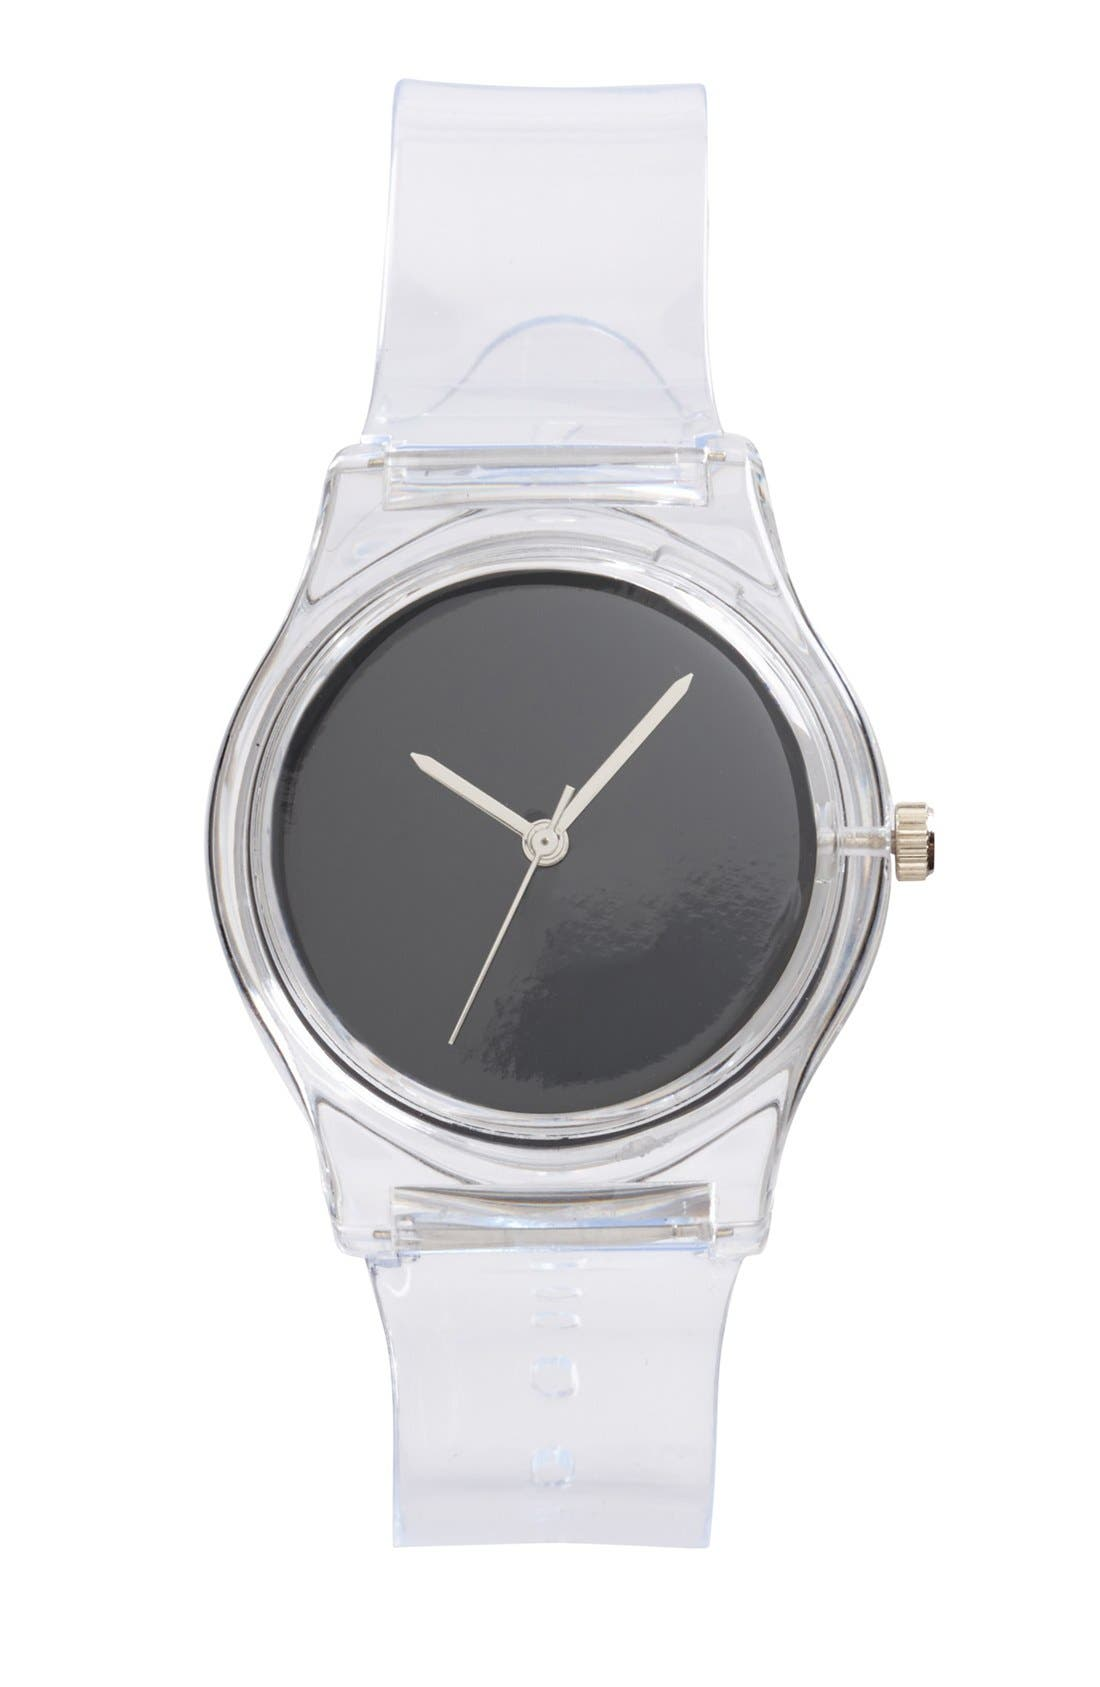 Main Image - MAY28TH Round Dial Transparent Strap Watch, 25mm